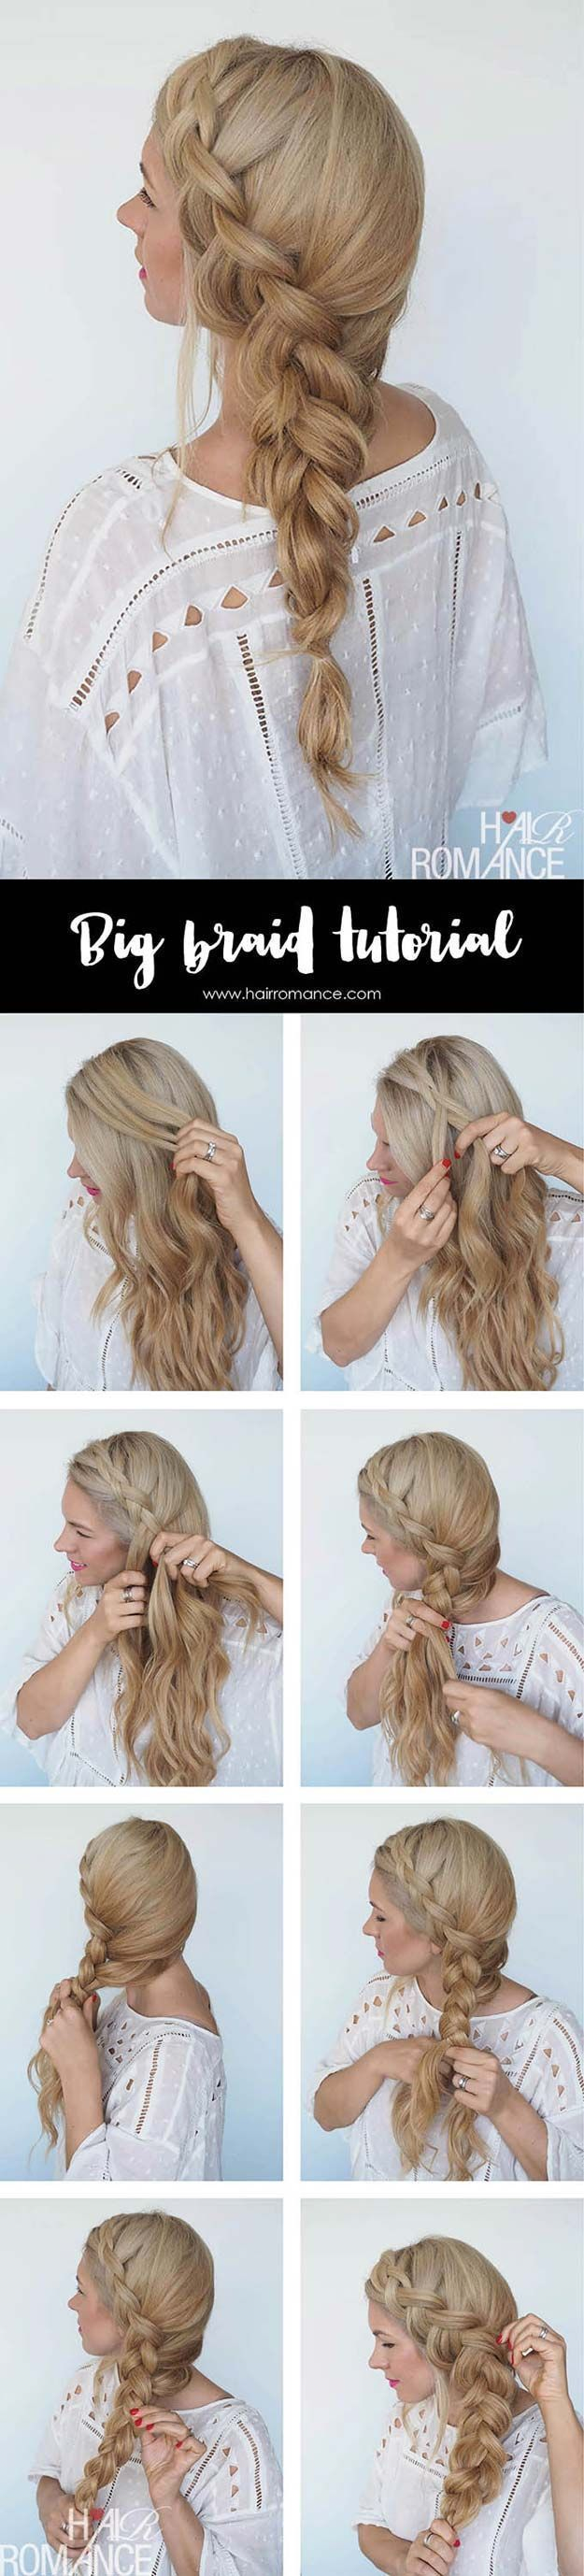 Best Hair Braiding Tutorials - Big Braid + Instant Mermaid Hair Tutorial - Easy Step by Step Tutorials for Braids - How To Braid Fishtail, French Braids, Flower Crown, Side Braids, Cornrows, Updos - Cool Braided Hairstyles for Girls, Teens and Women - Sch